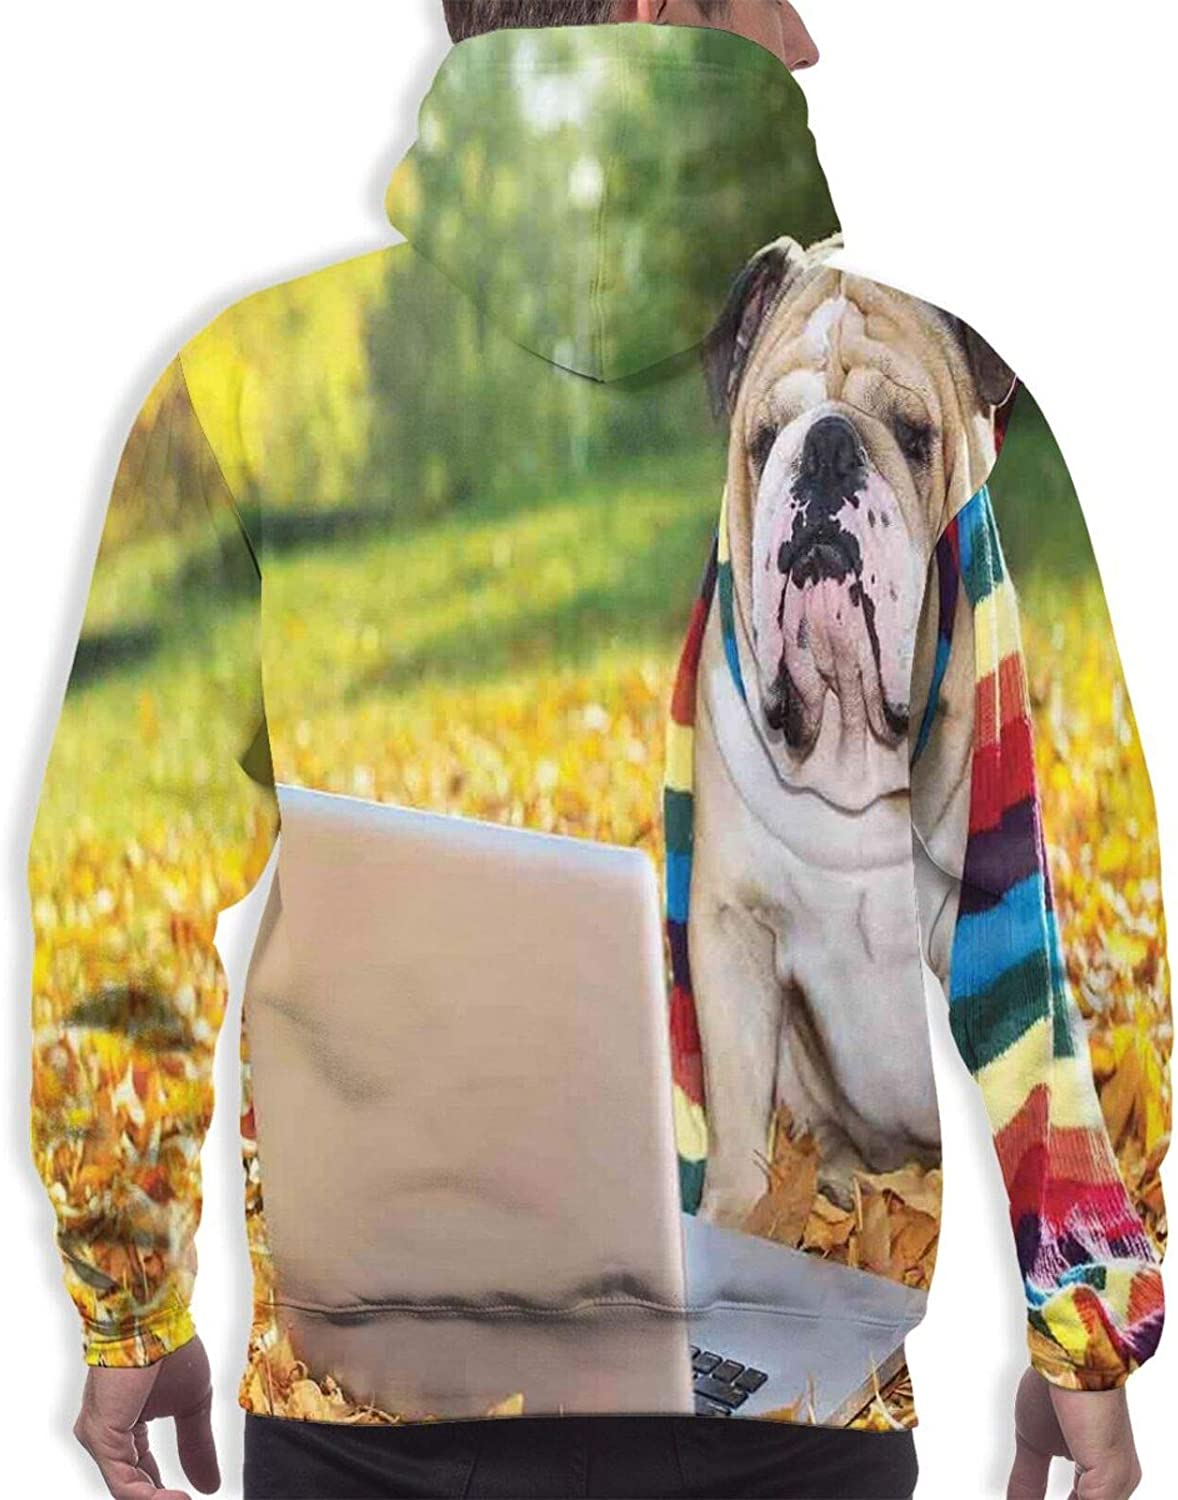 Men's Hoodies Sweatshirts,Dog in The Park with A Laptop and Rainbow Colored Scarf Funny Photography